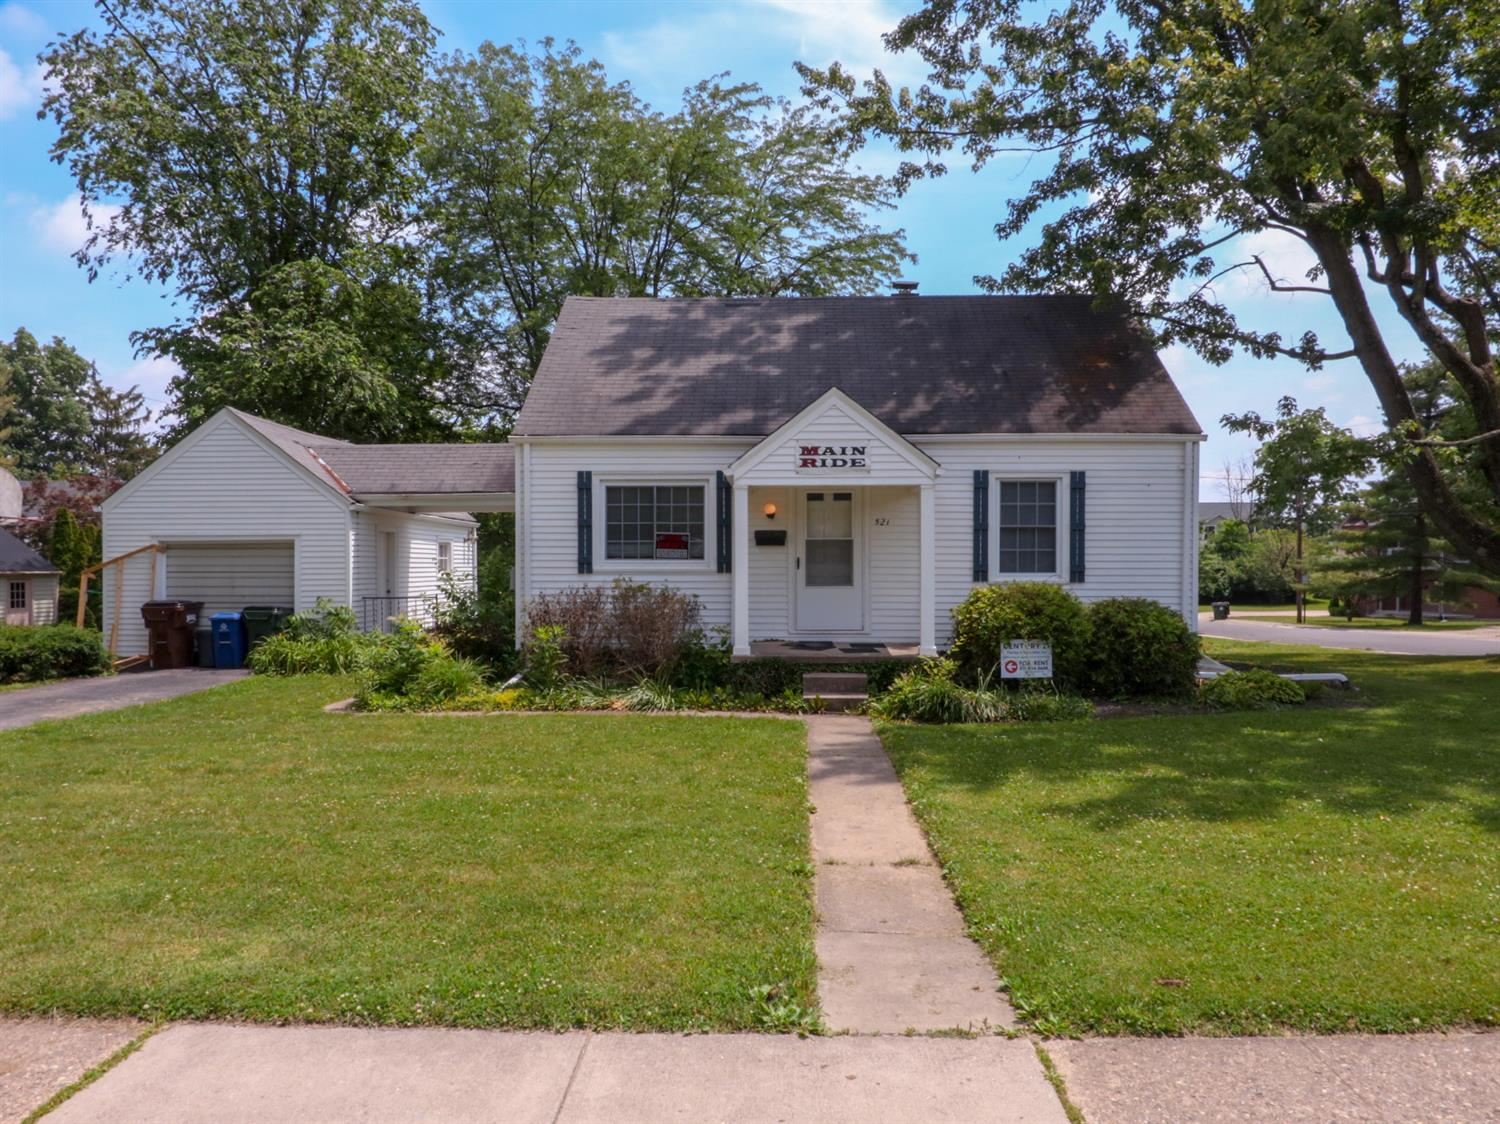 Property for sale at 521 S Main Street, Oxford,  Ohio 45056